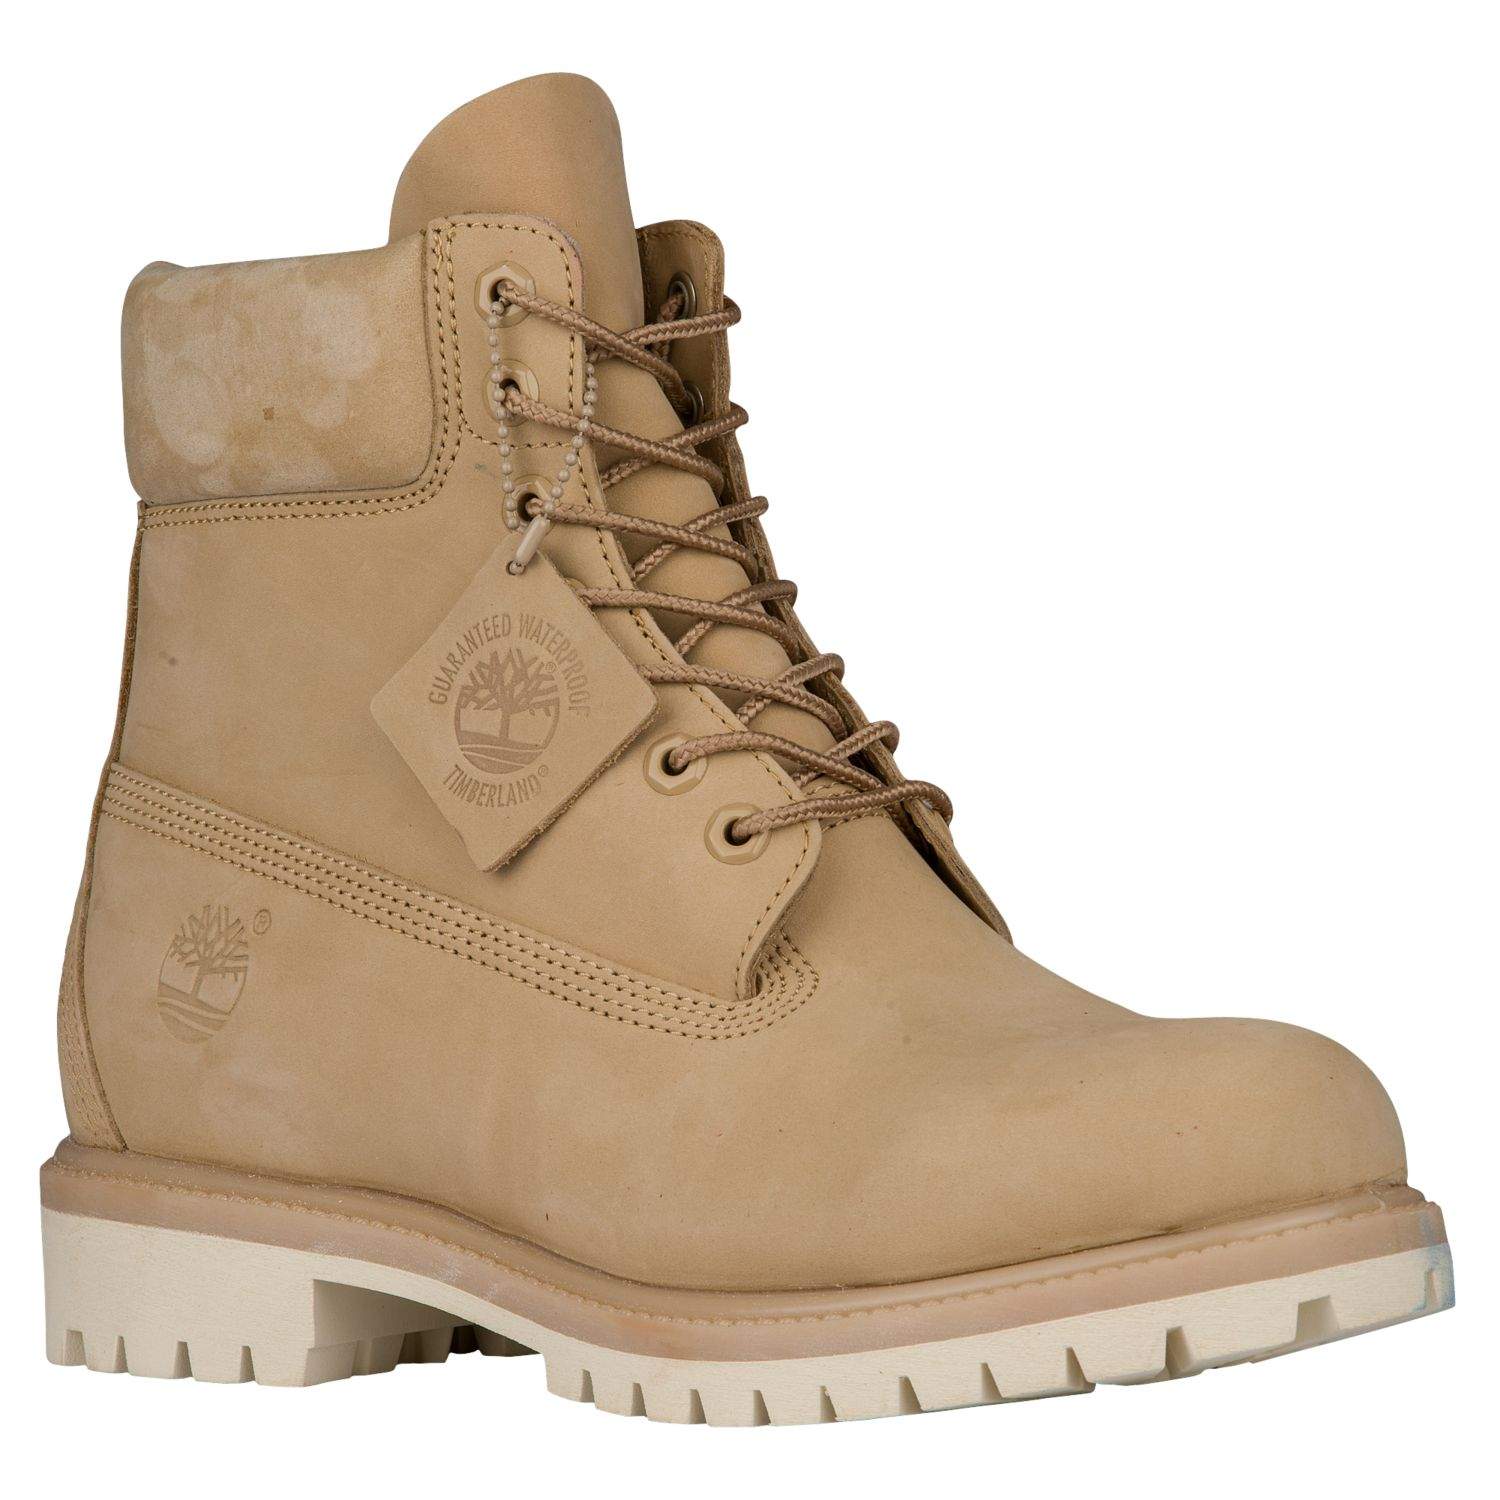 Colored Timberlands | Timberlands Women | Timberland Women Boots